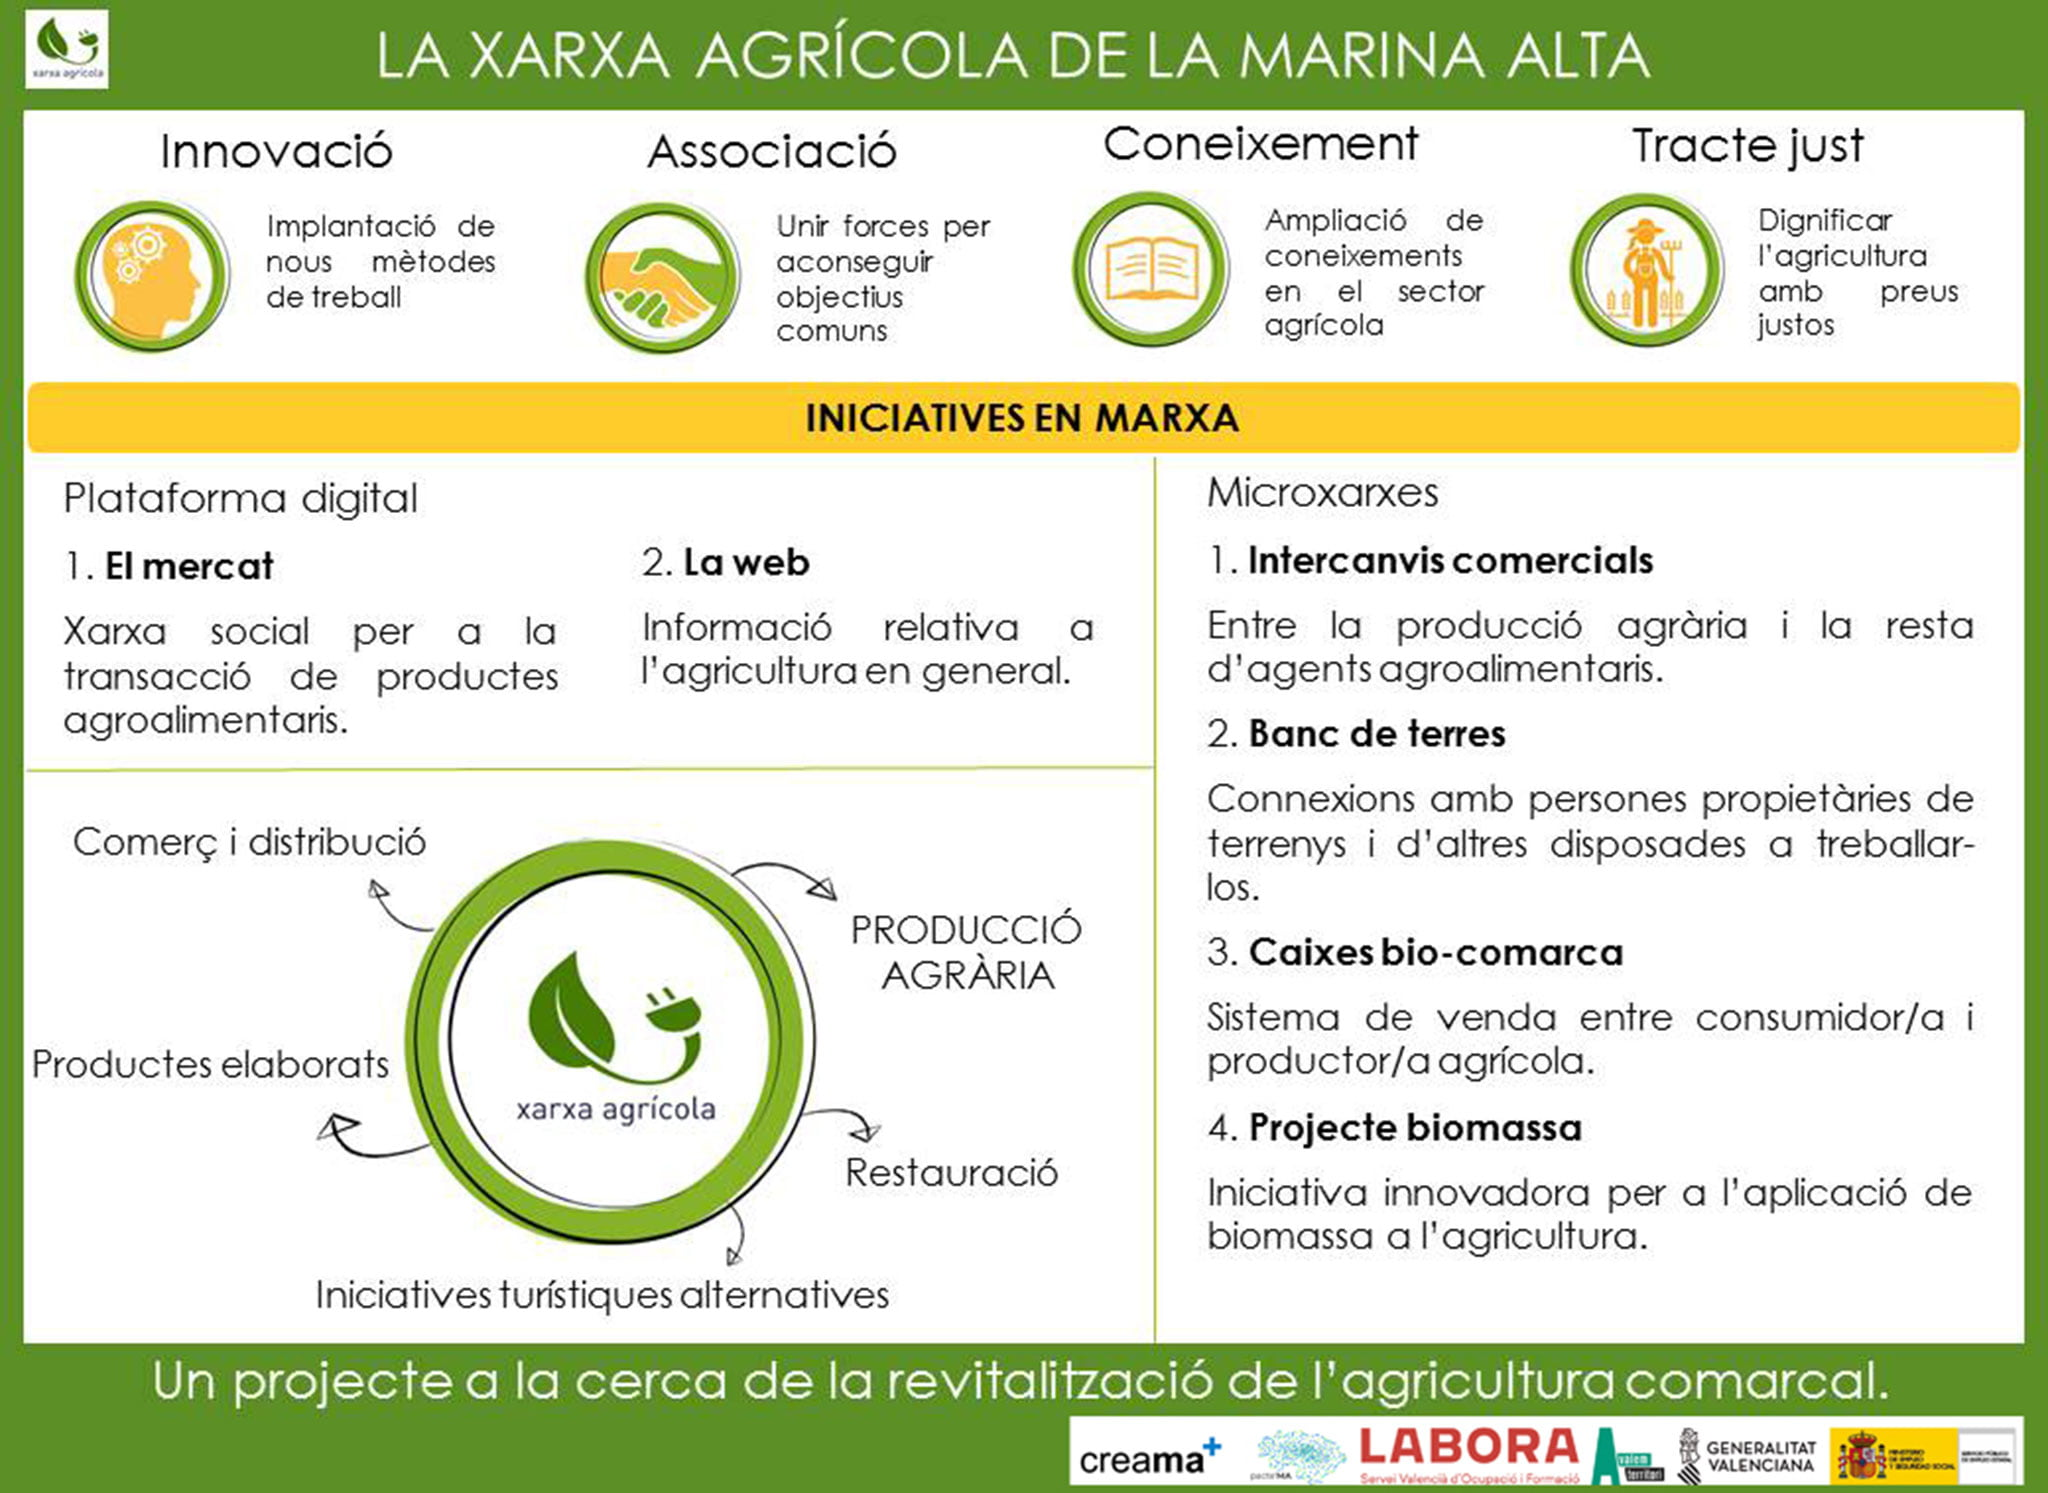 Explanatory infographic of the Xarxa Agrícola project